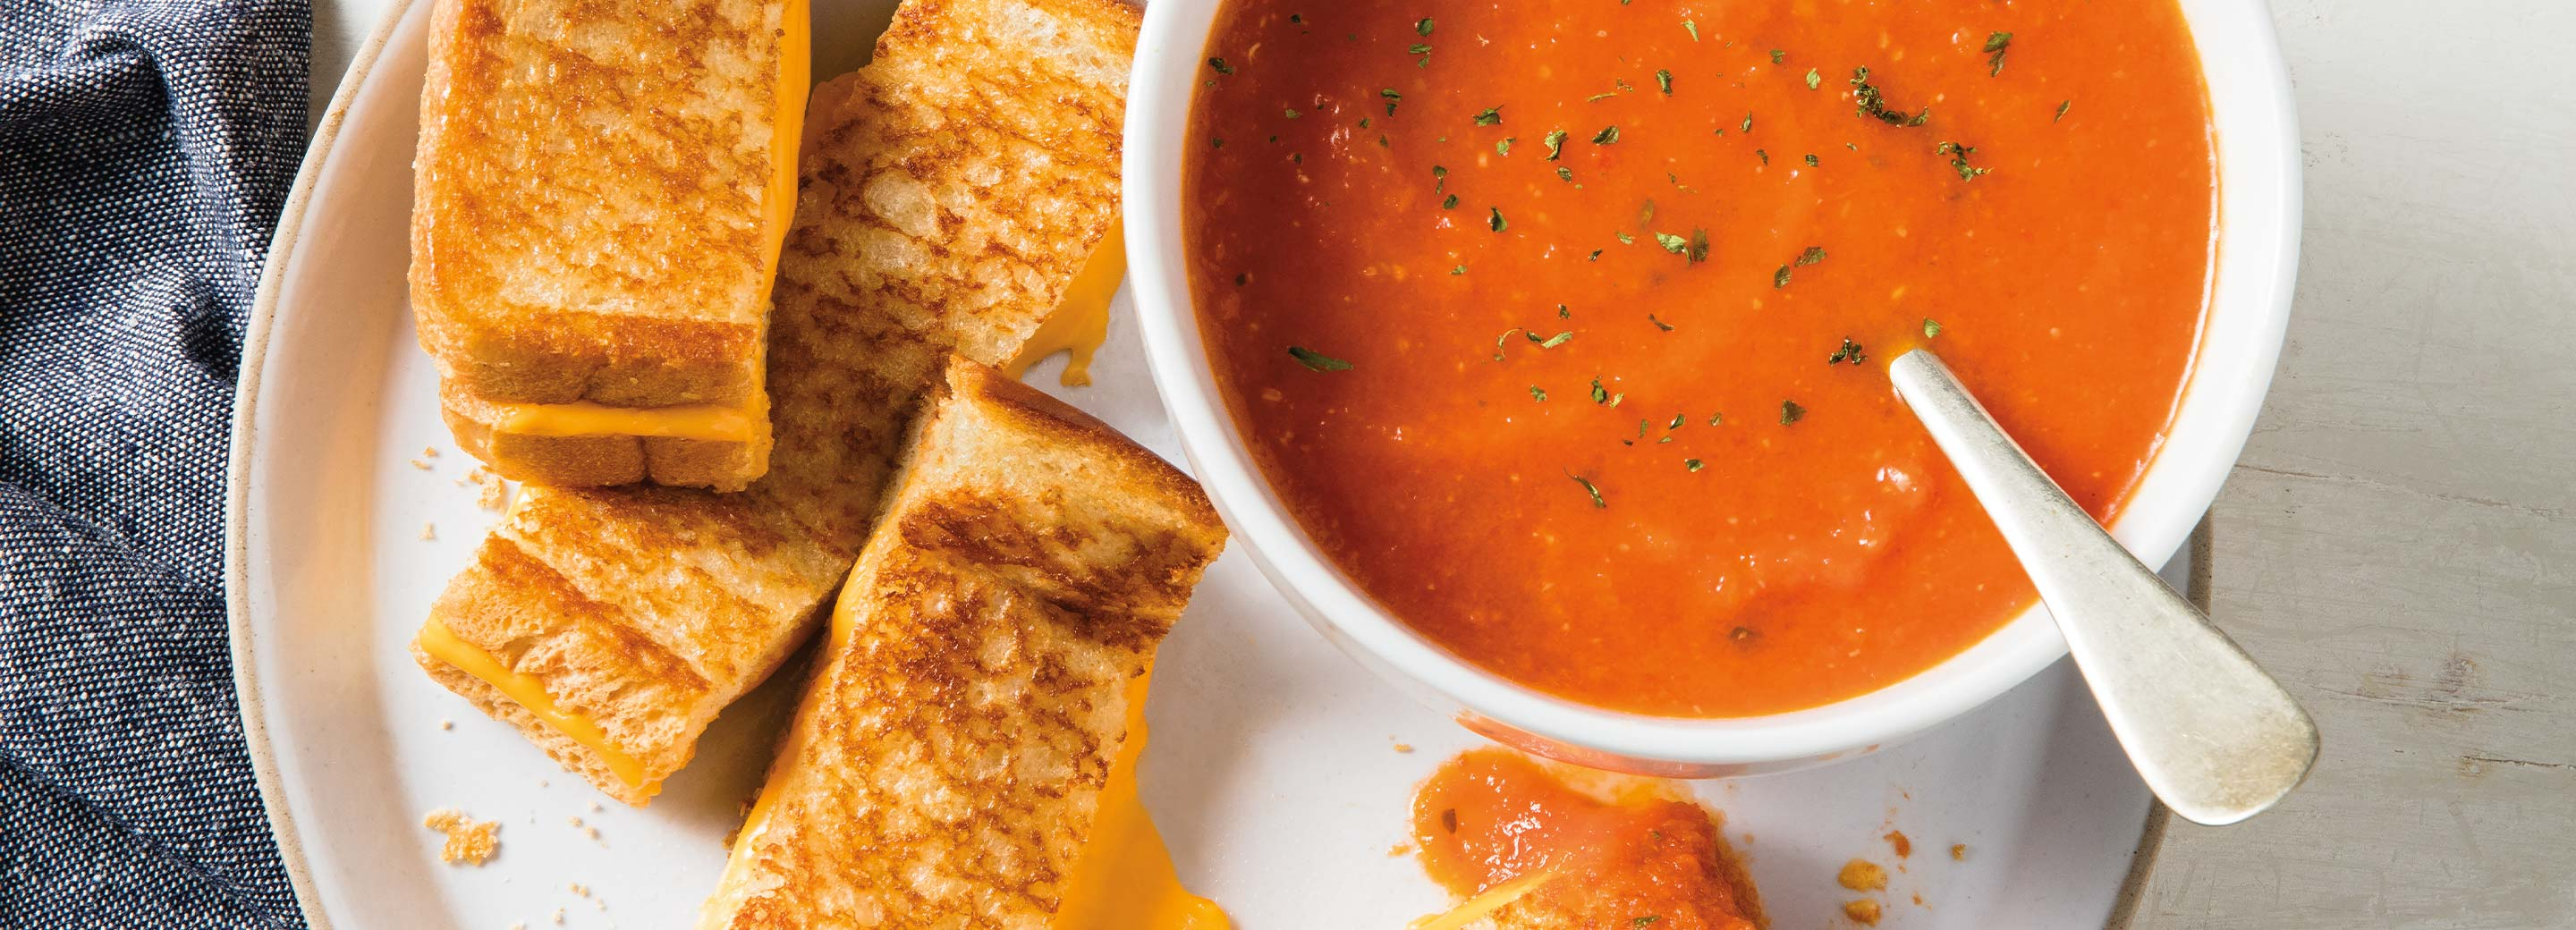 Classic Grilled Cheese & Tomato Basil Soup